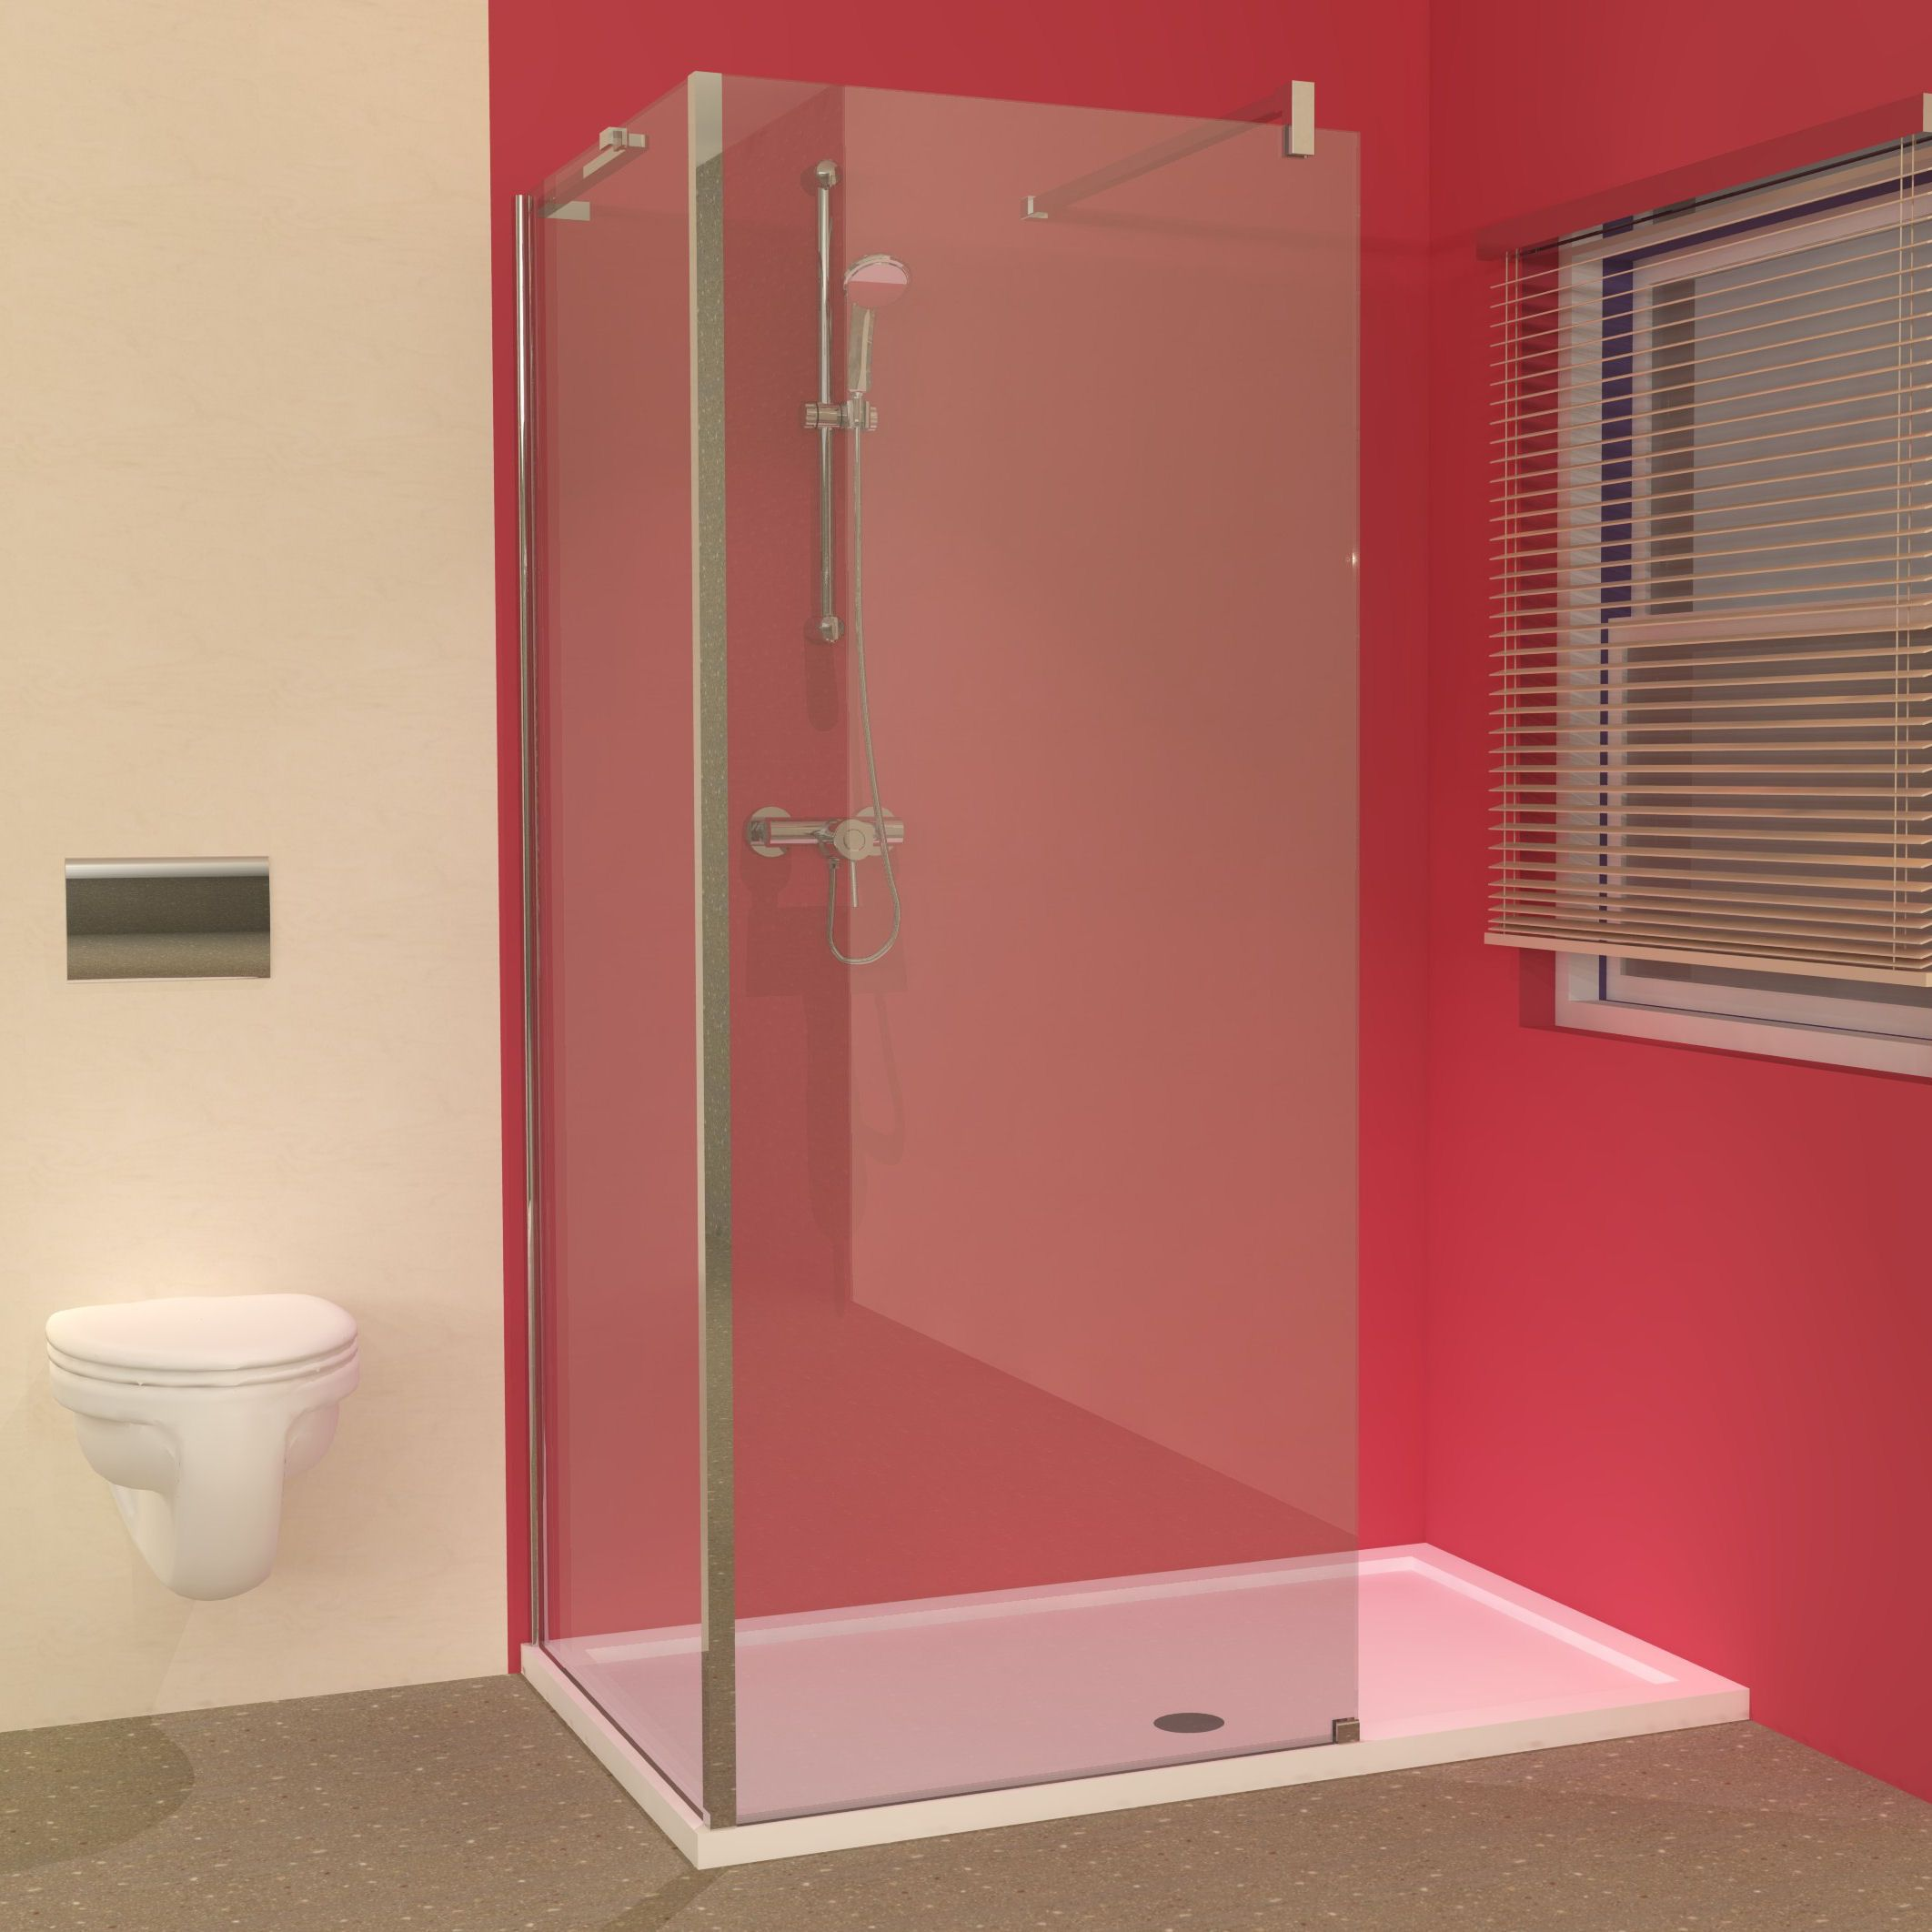 Line 1400 x 900 Tray with Walk in Shower Panels Enclosure